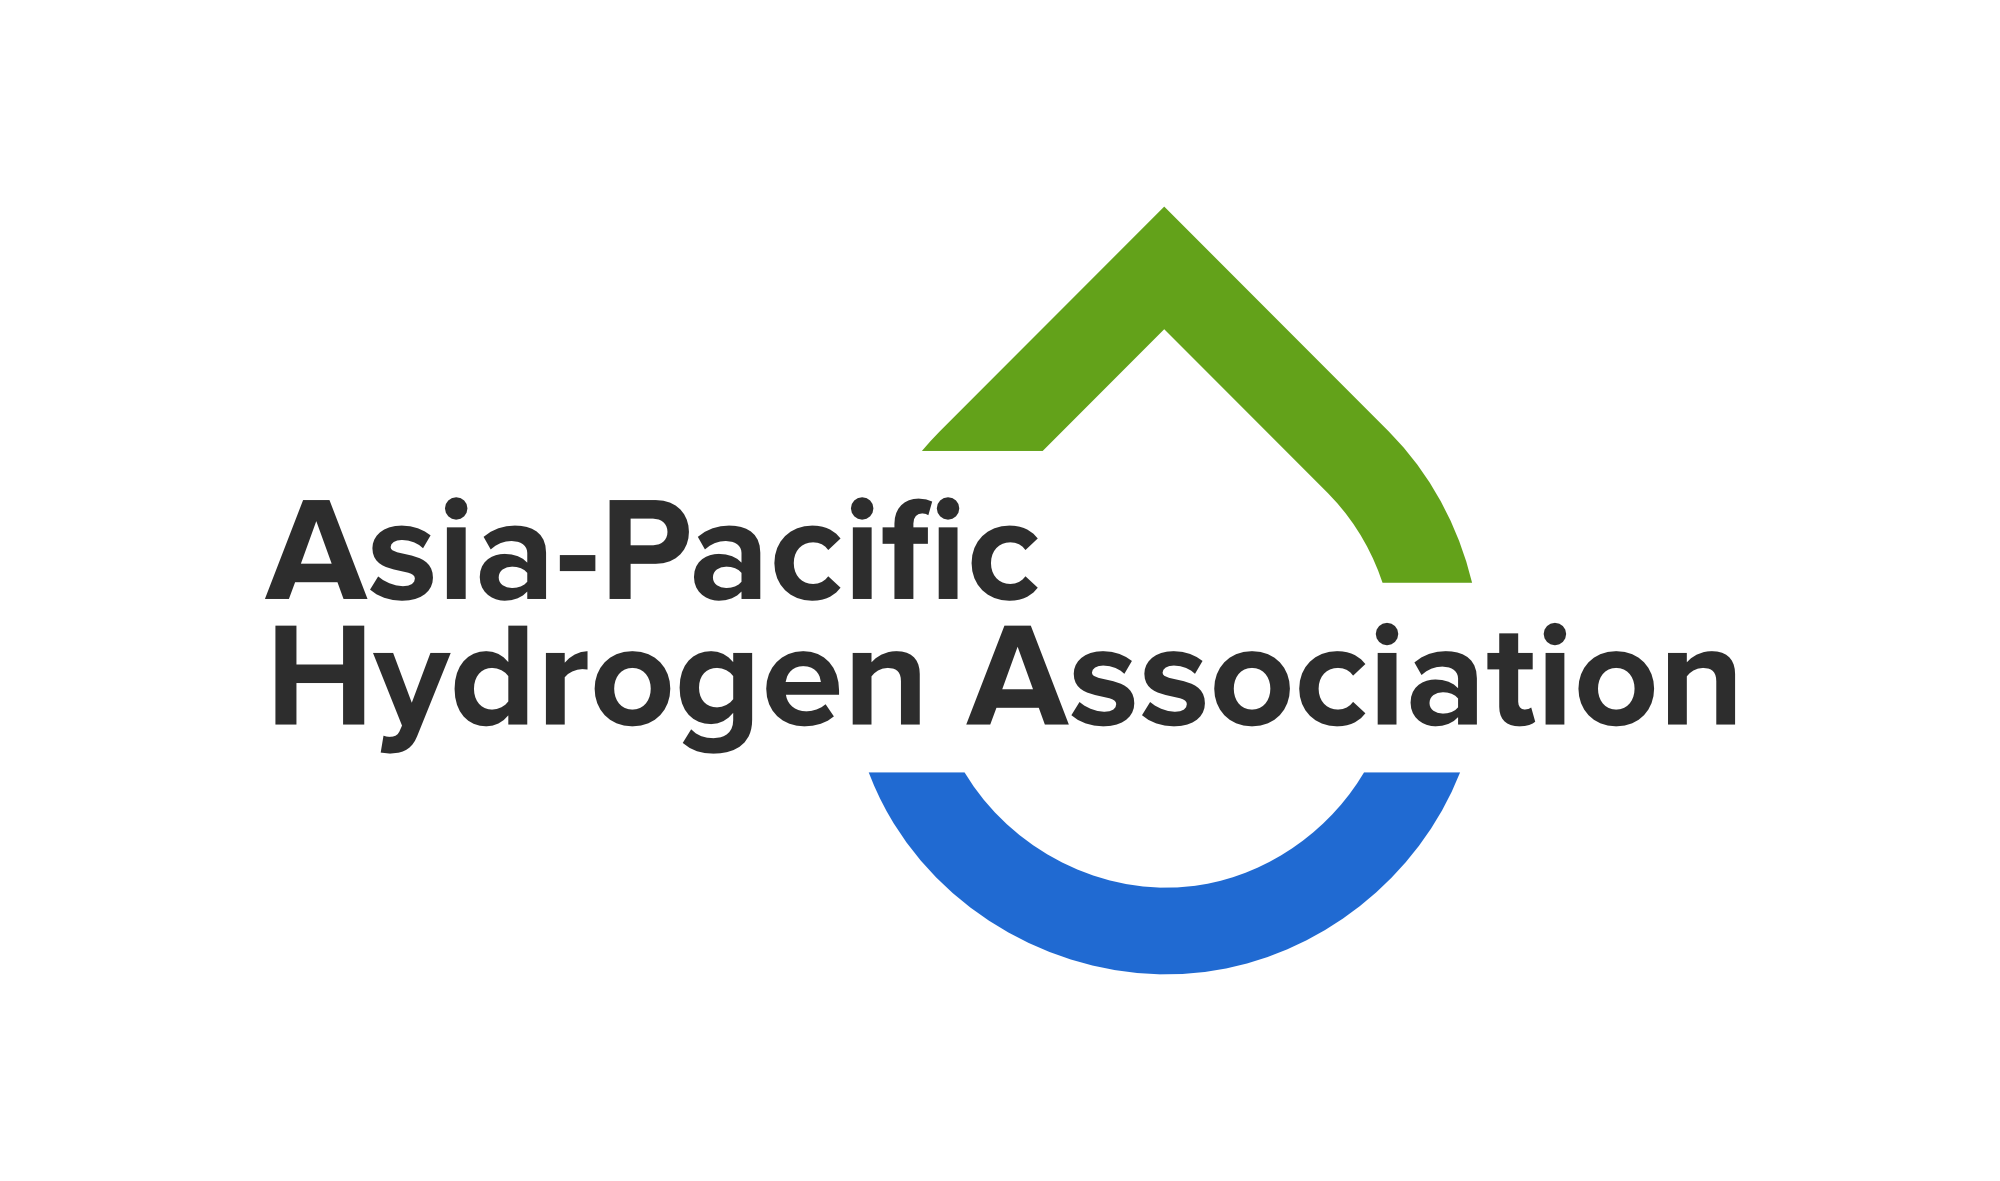 Asia-Pacific Hydrogen Association Logo